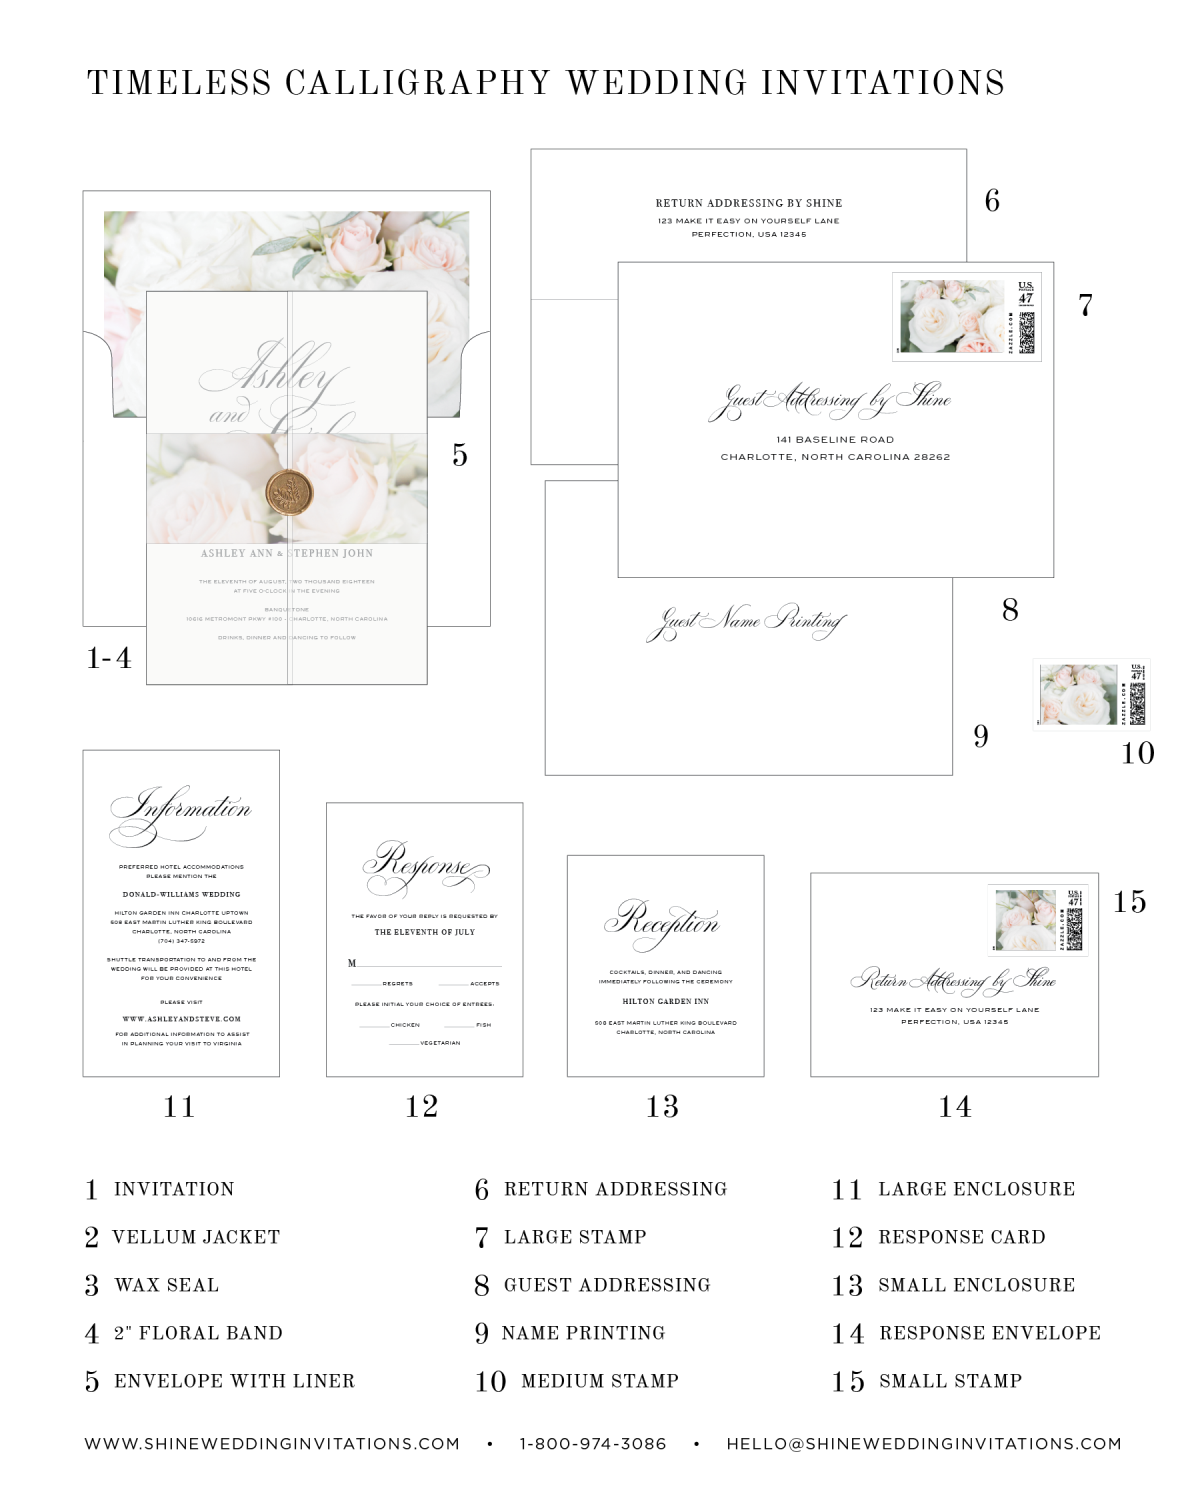 Timeless Calligraphy Floral Wedding Invitation Diagram